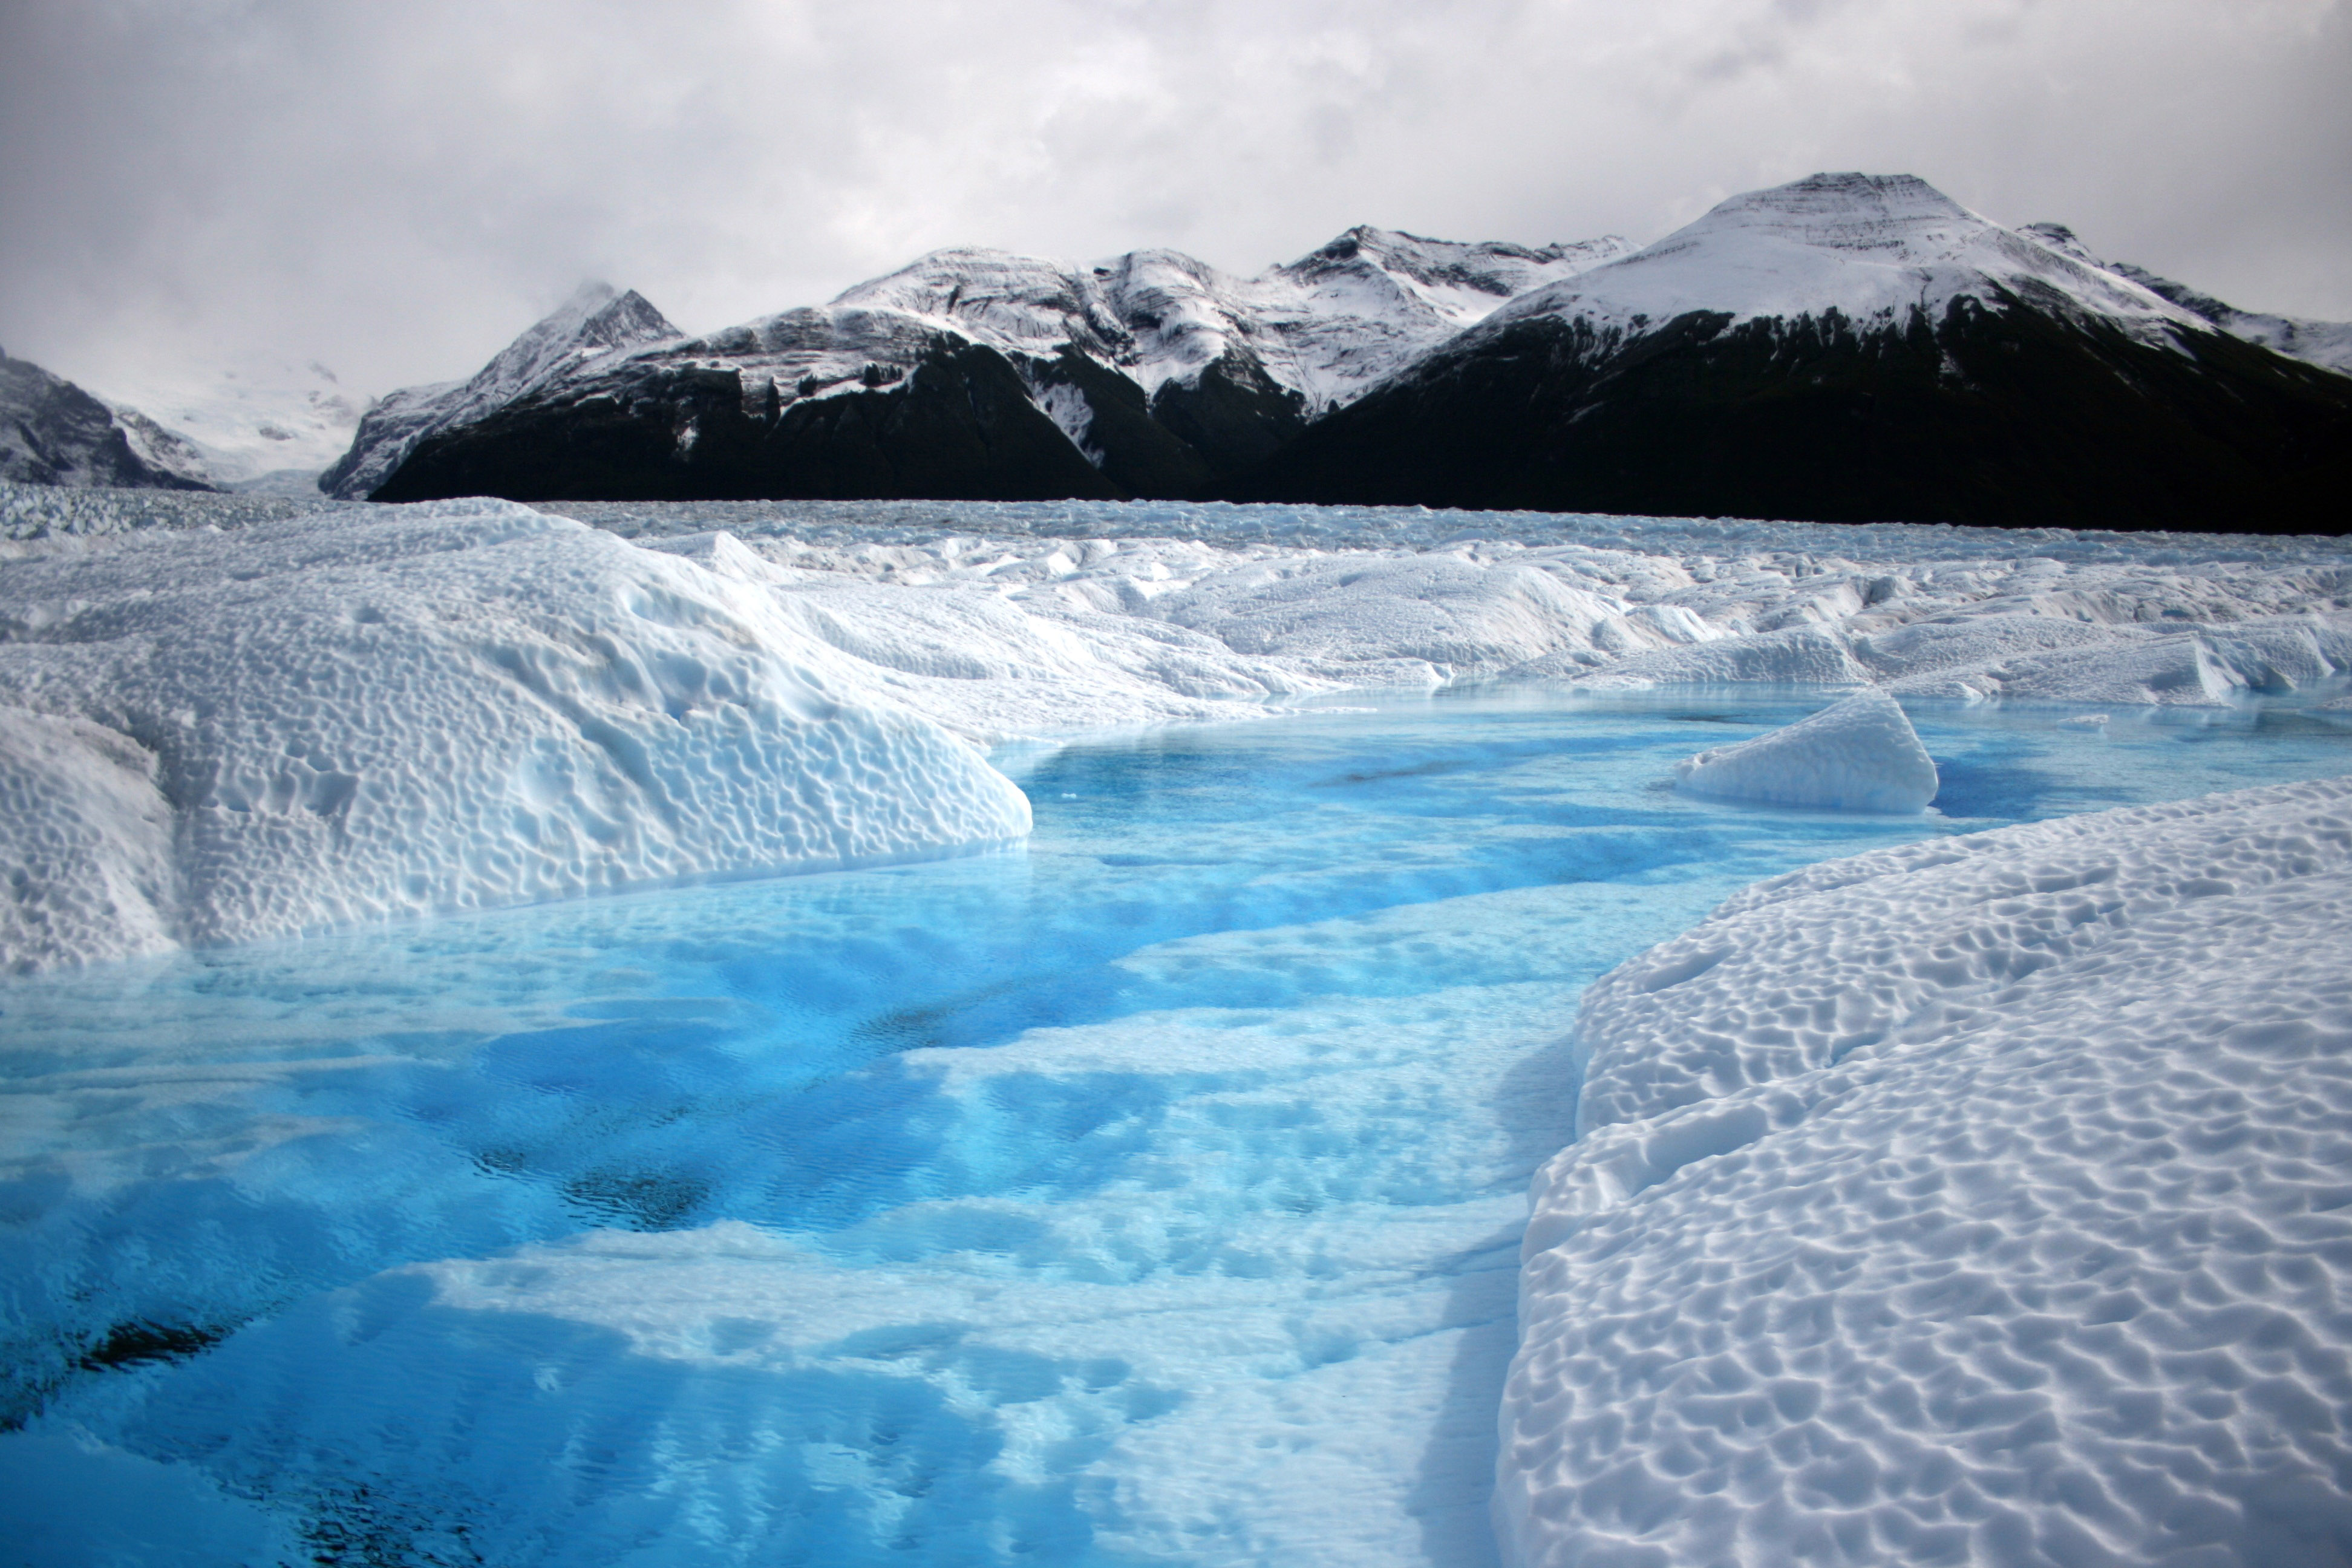 Beautiful landscape of the ice fields in Patagonia